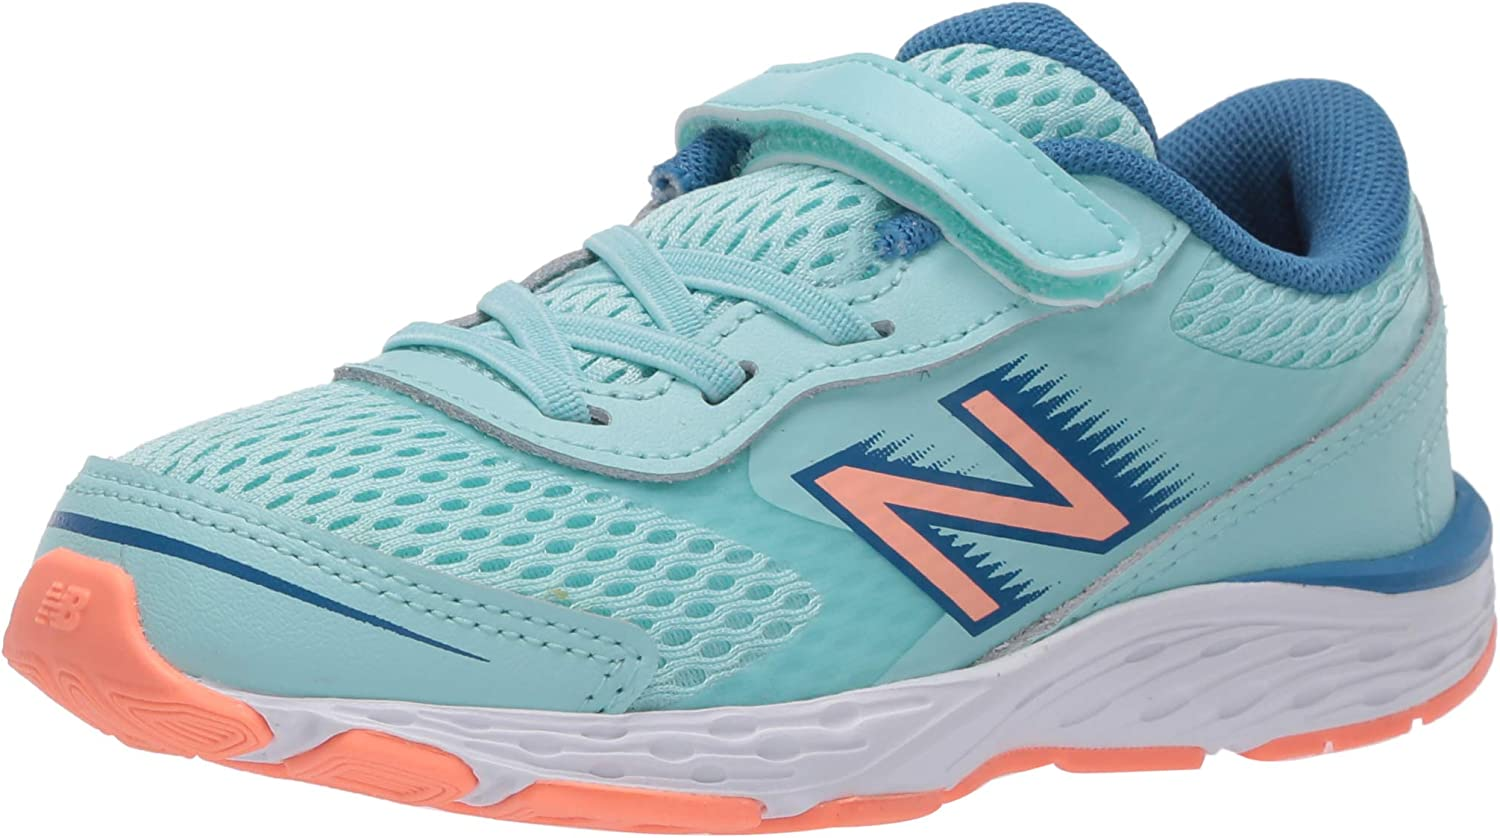 New Balance 680 V6 - Zapatillas de correr con cierre alternativo: Amazon.es: Zapatos y complementos